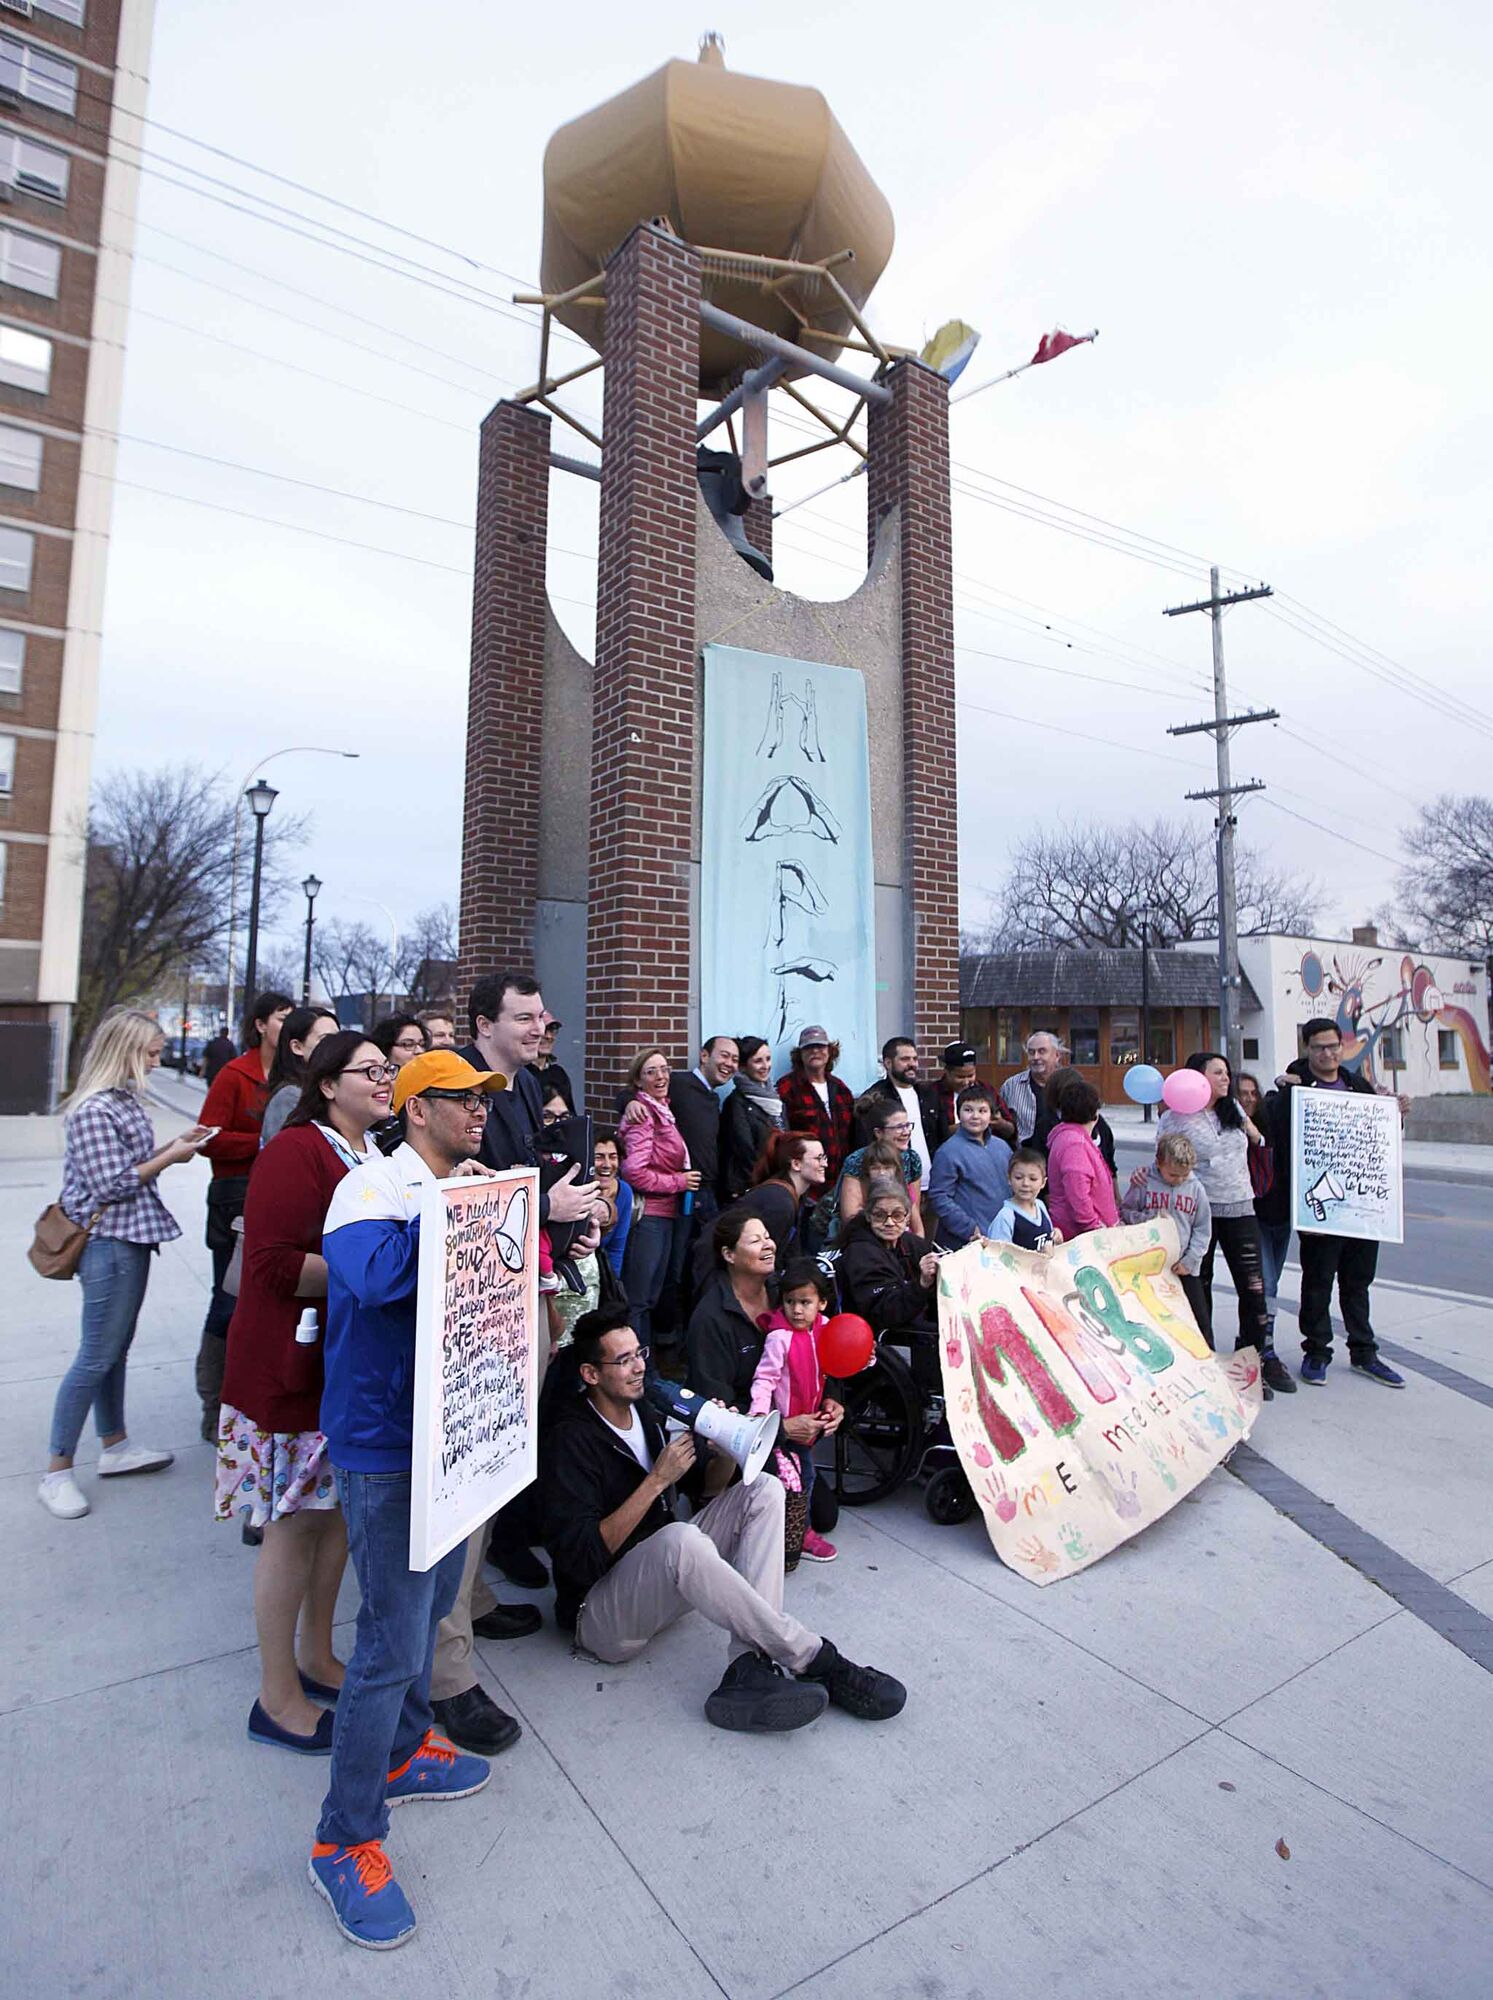 Fearless R2W was formed in 2014 in response to community calls to action at Meet Me at the Bell Tower events.